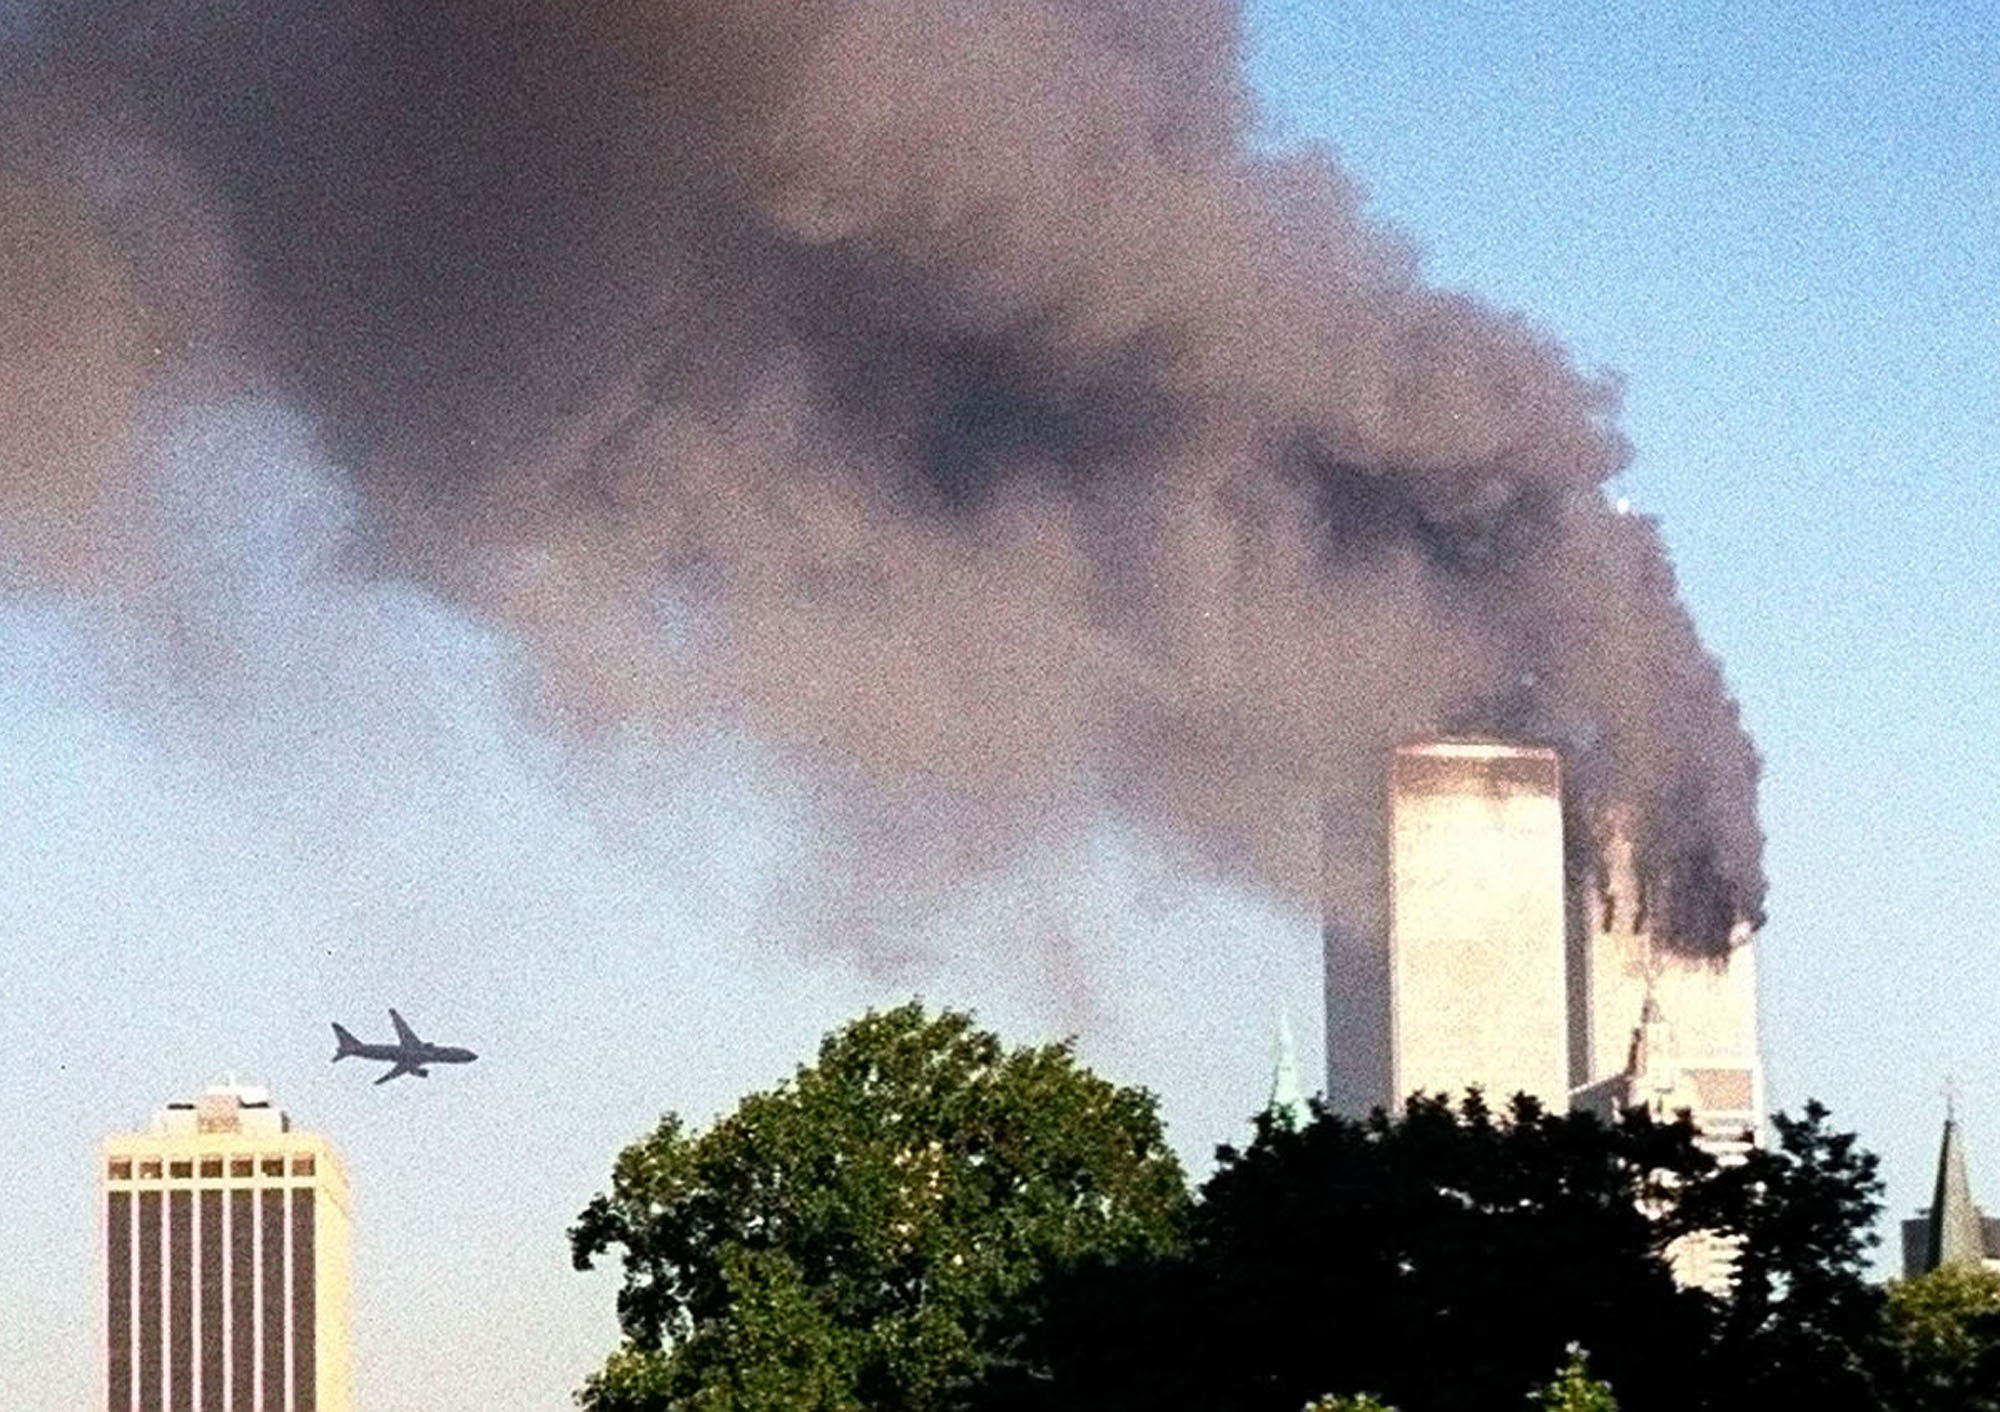 An airplane approaches the south tower of the World Trade Center on 9/11.